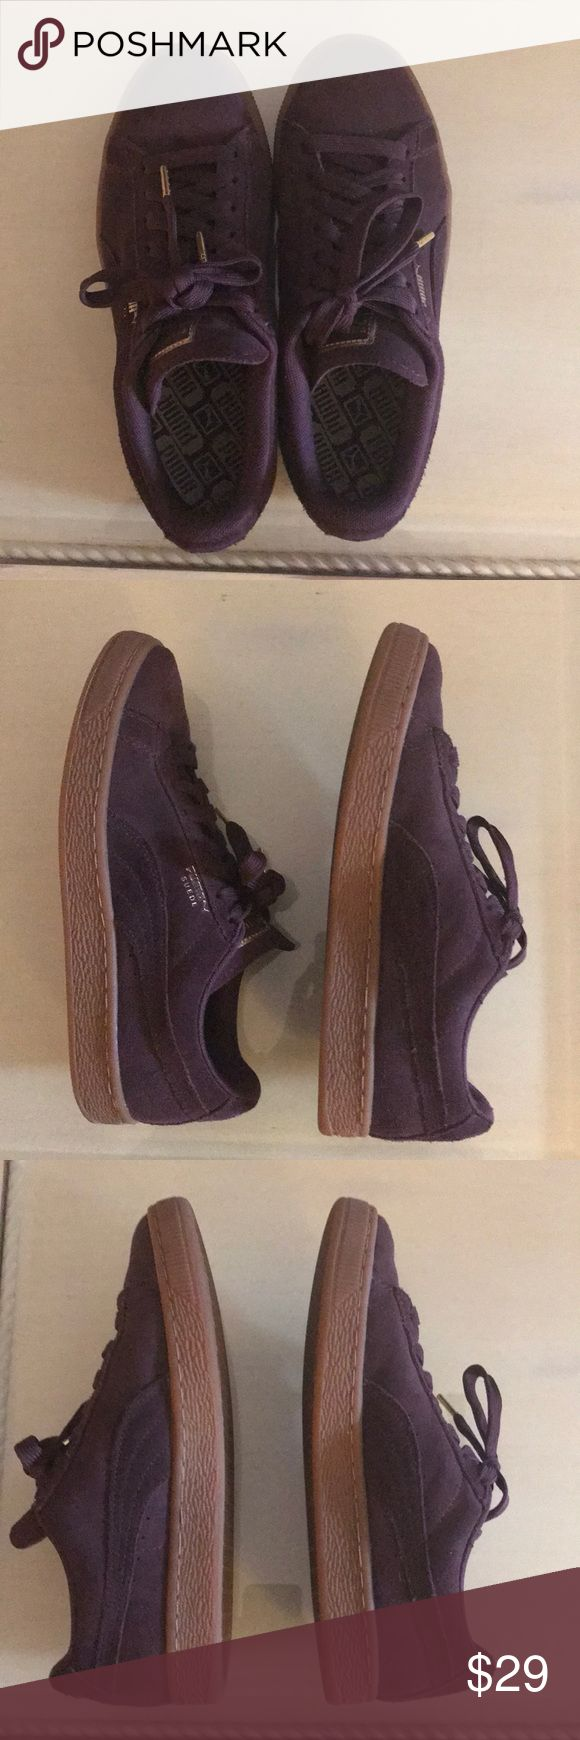 Puma suede gold classic red wine color Suede upper Lace closure for a snug fit Rubber outsole for grip PUMA Formstrip at both sides PUMA Suede callout in gold print at lateral side Gold print PUMA Logo label at tongue and PUMA Cat Logo at heel Puma Shoes Sneakers